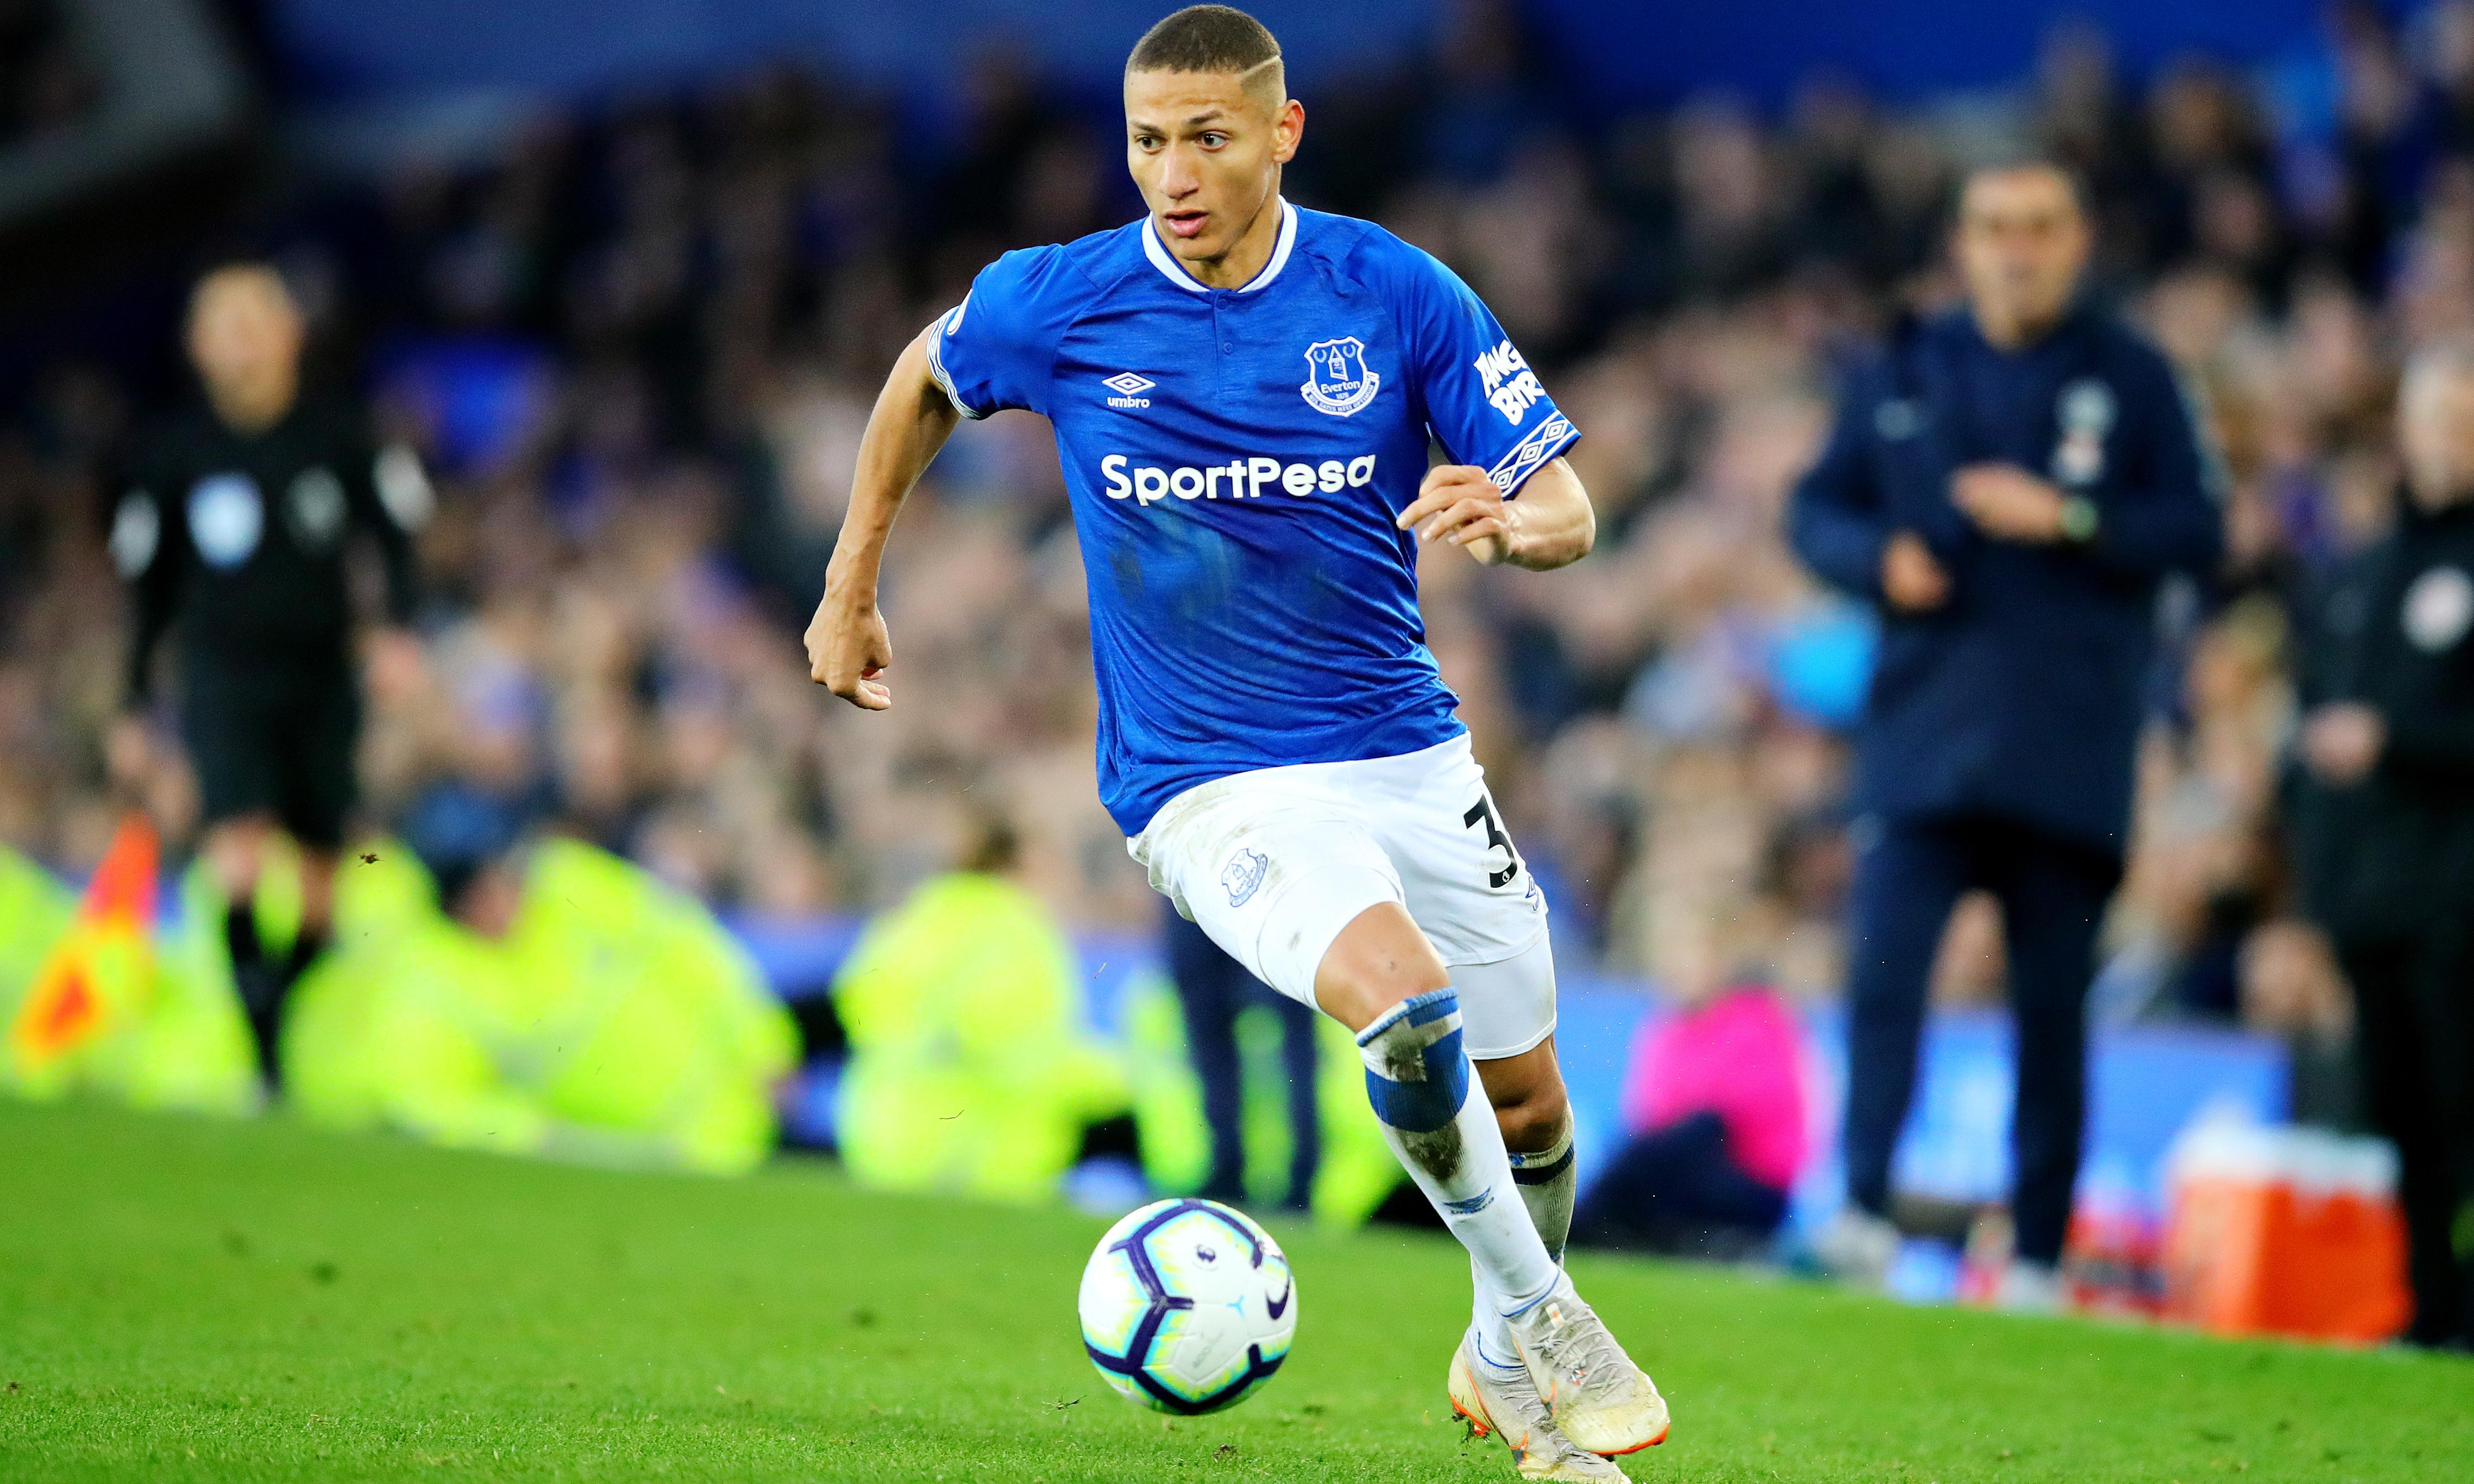 Football transfer rumours: Everton's Richarlison heading for Milan?